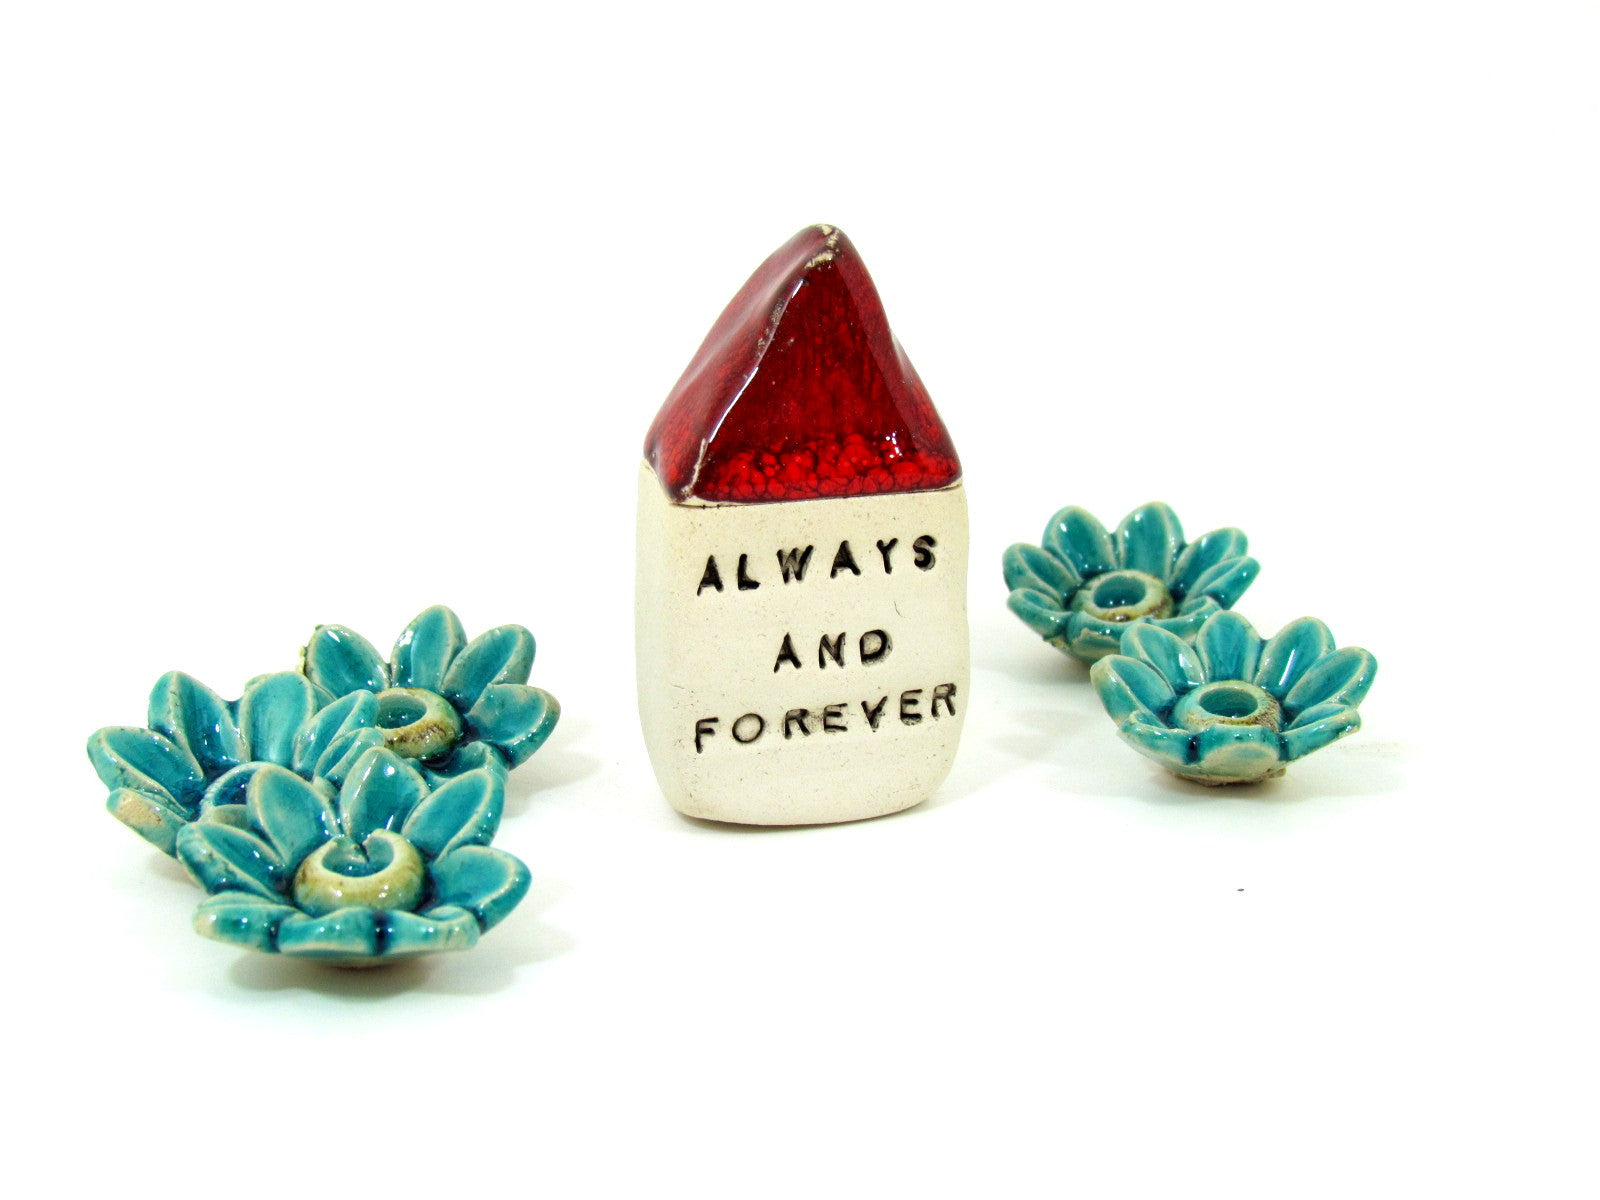 Always ans forever miniature house - Ceramics By Orly  - 1